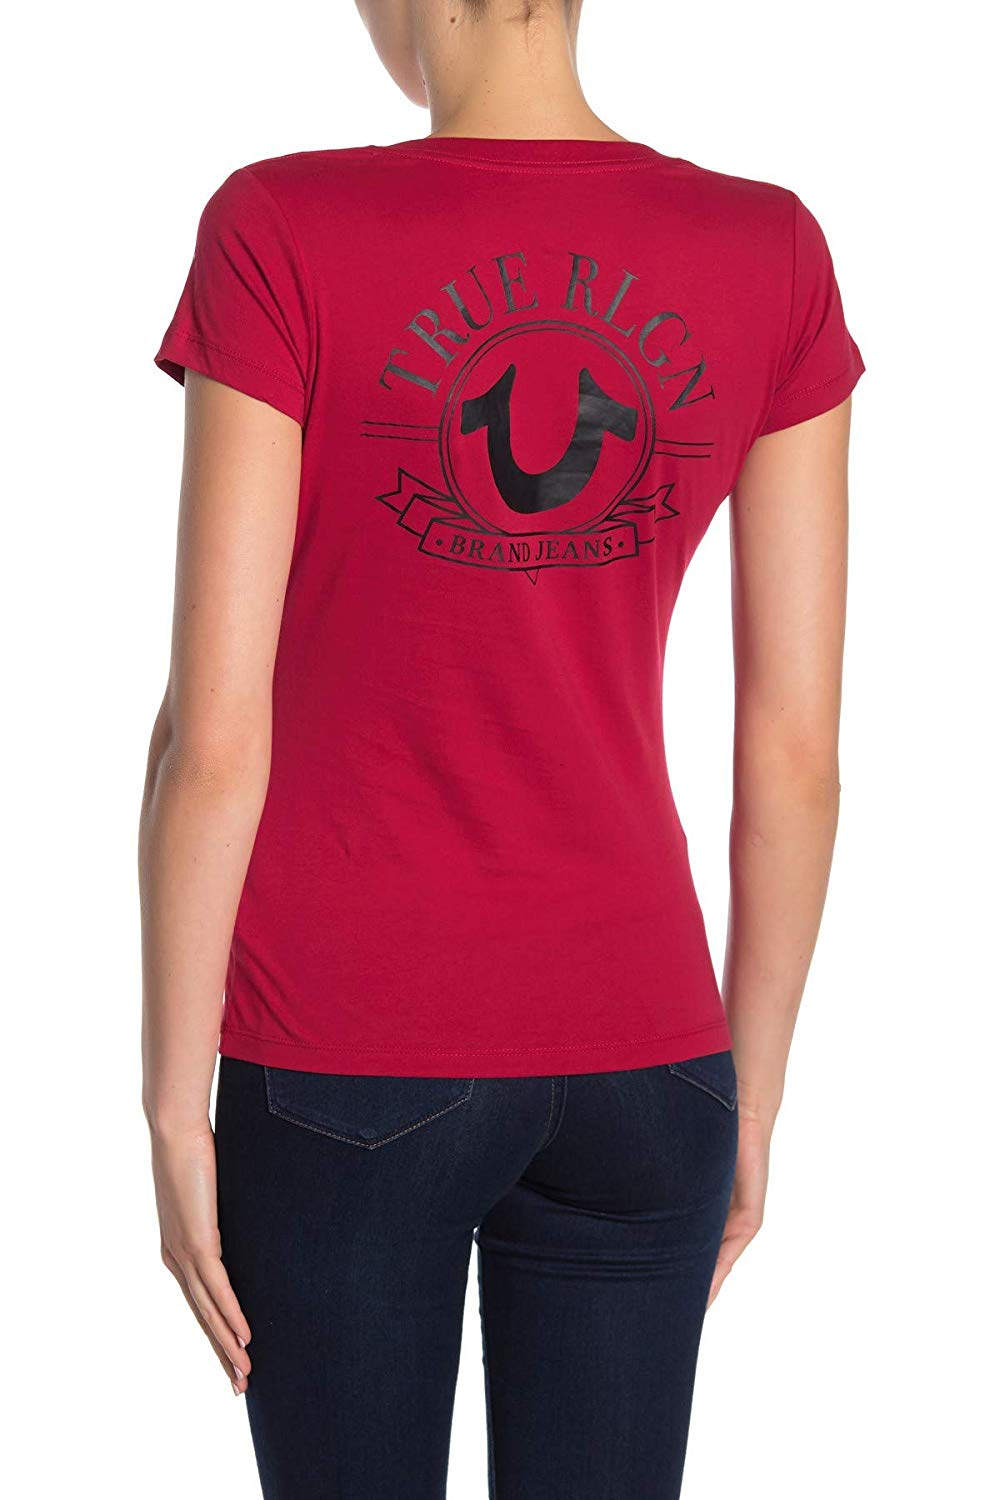 True-Religion-Women-039-s-Big-Horseshoe-V-Neck-Tee-T-Shirt thumbnail 11